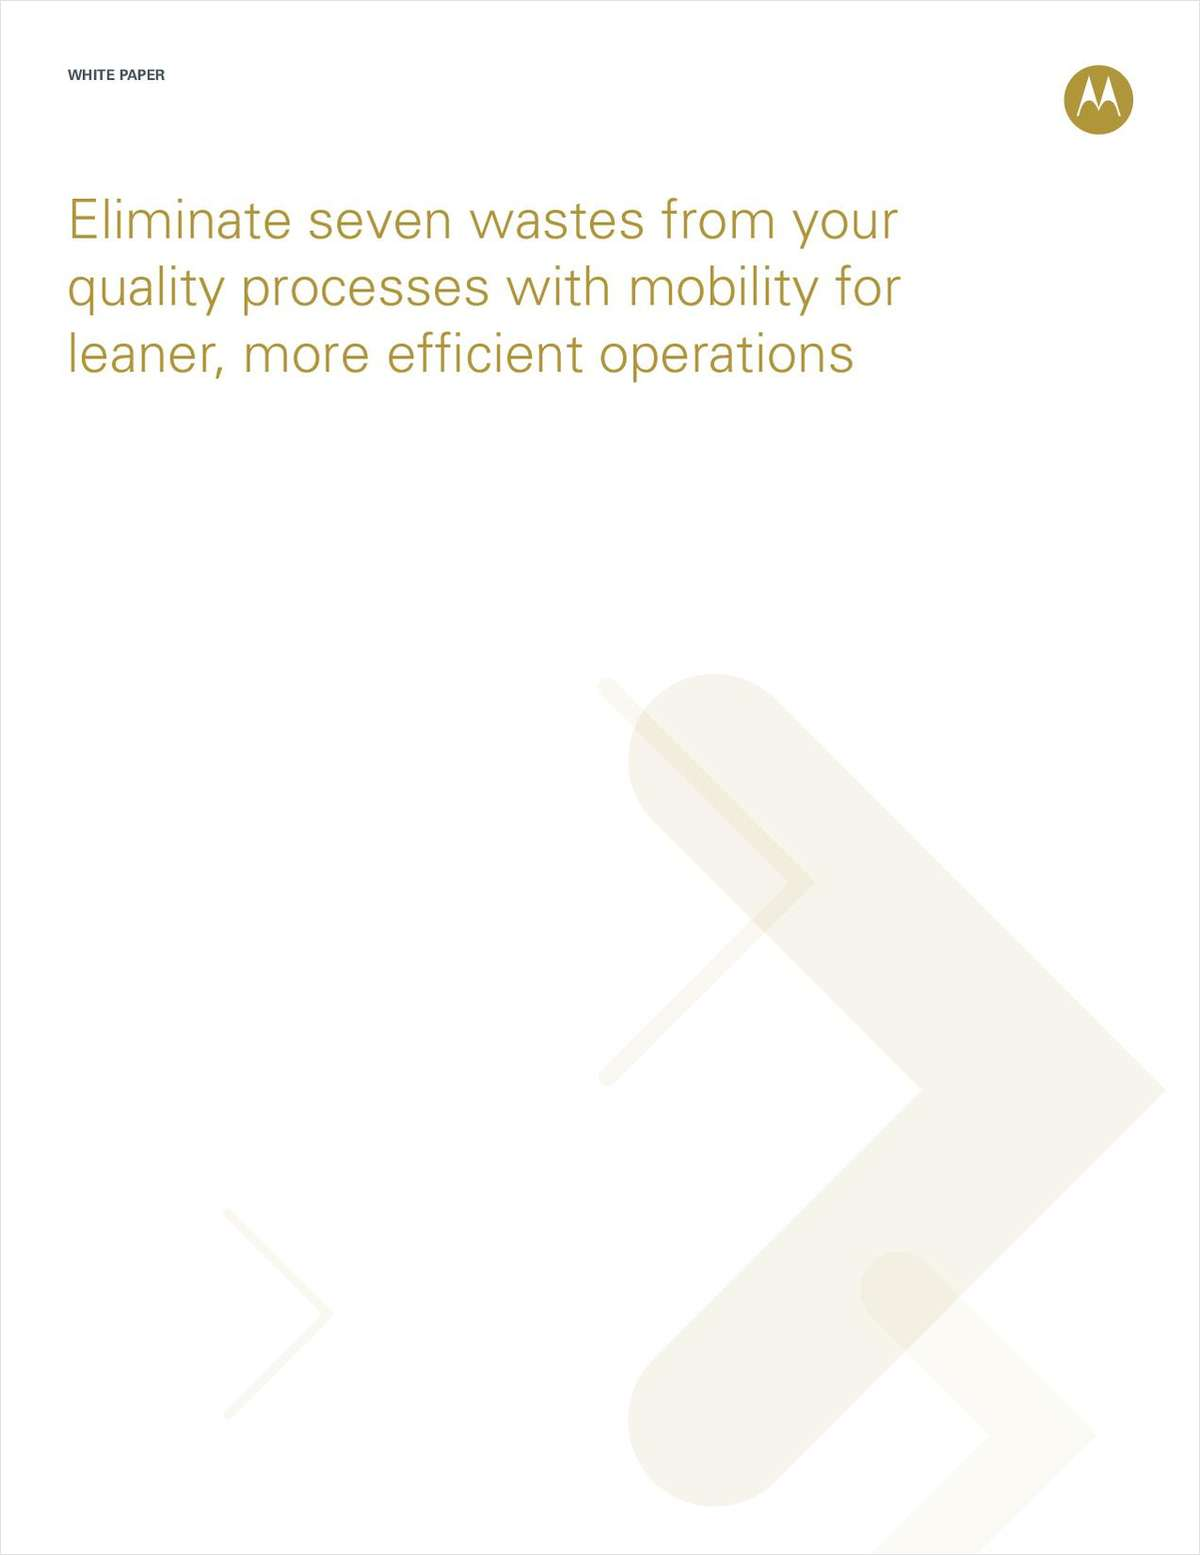 Eliminate Seven Wastes from Quality Processes with Mobility